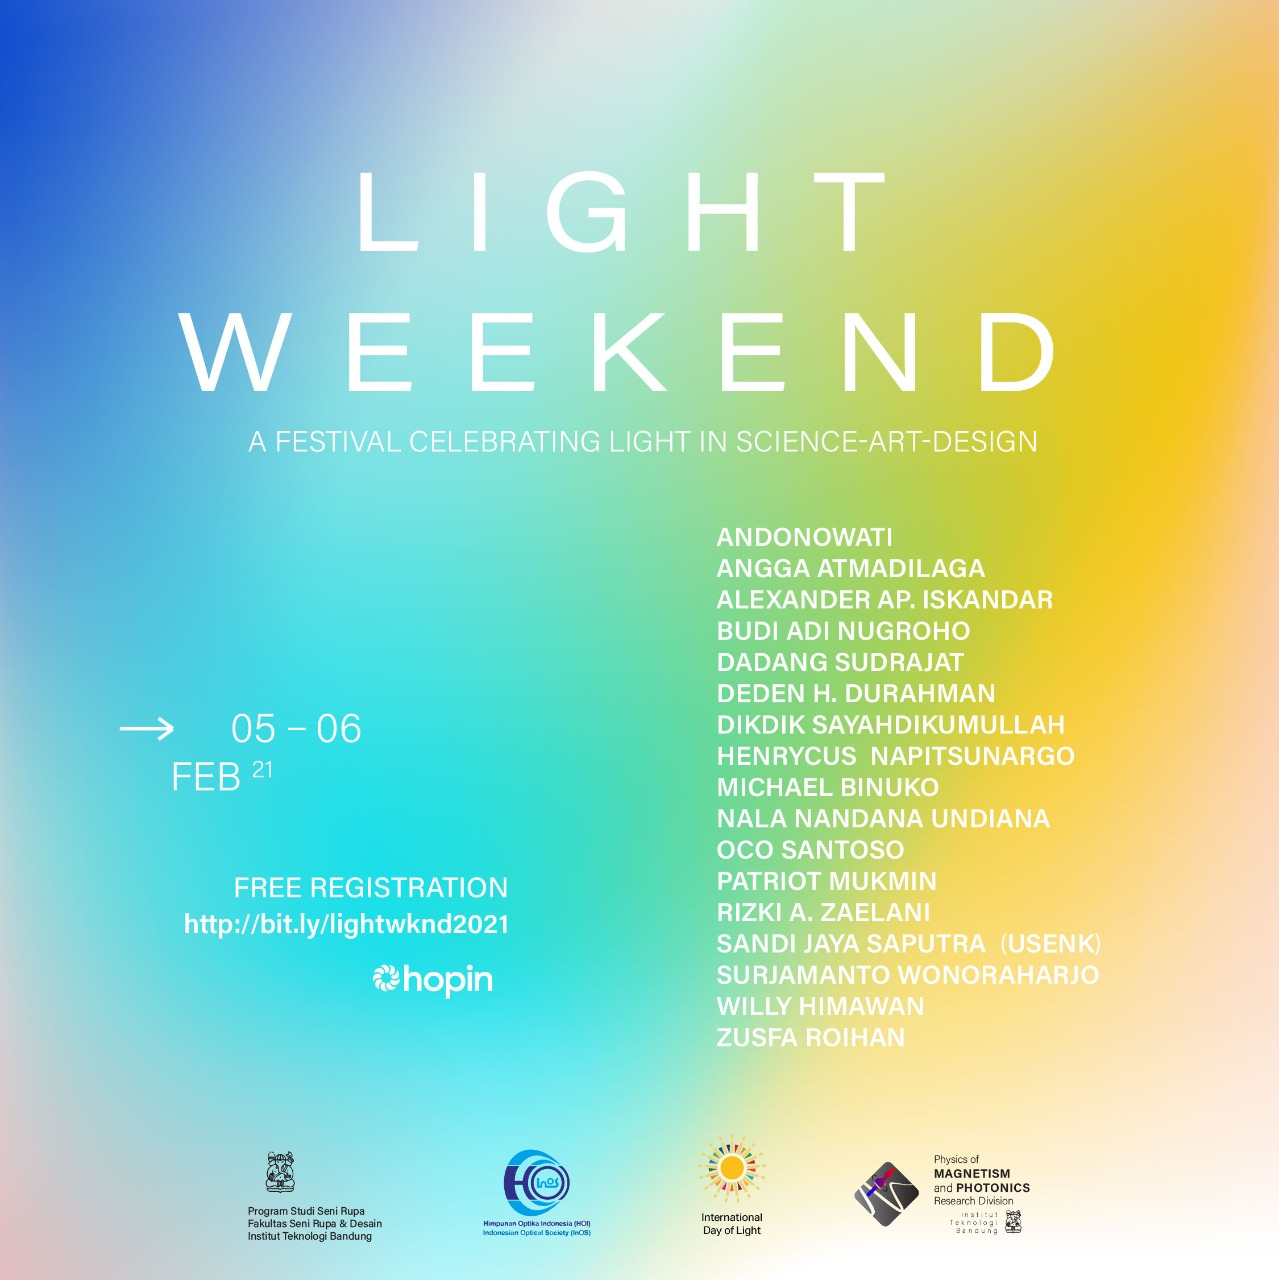 Light Weekend